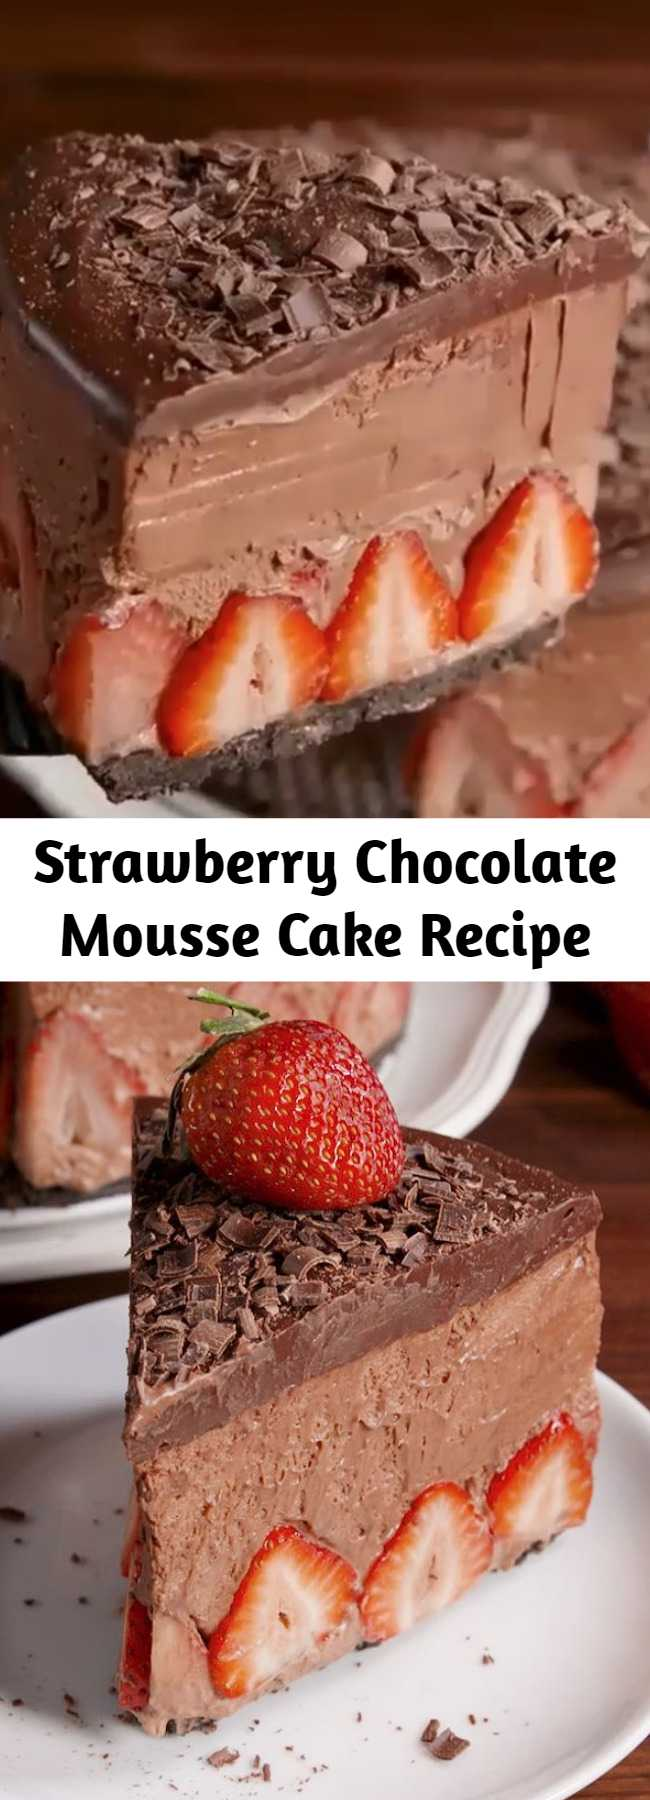 Strawberry Chocolate Mousse Cake Recipe - Get ready for the most decadent cake of your life. #food #easyrecipe #baking #dessert #cake